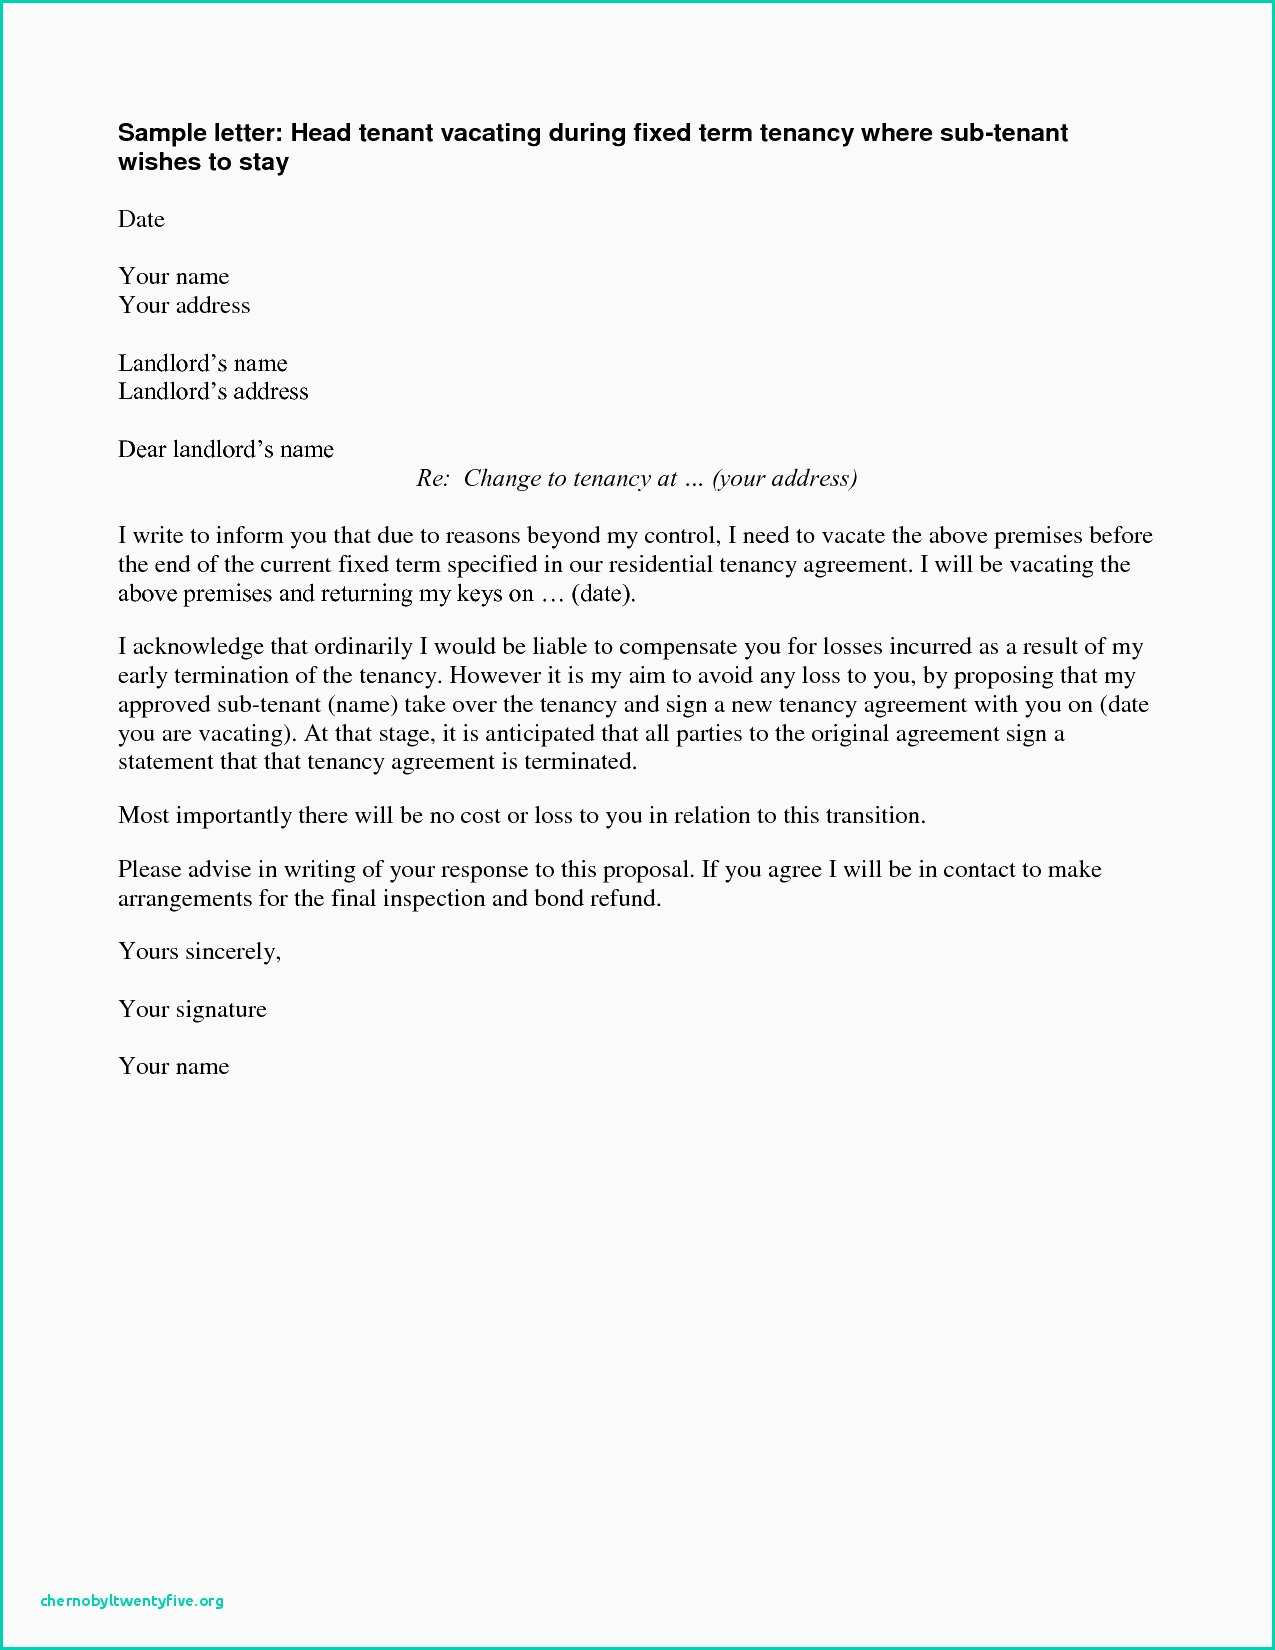 Rental Termination Letter To Tenant from mthomearts.com